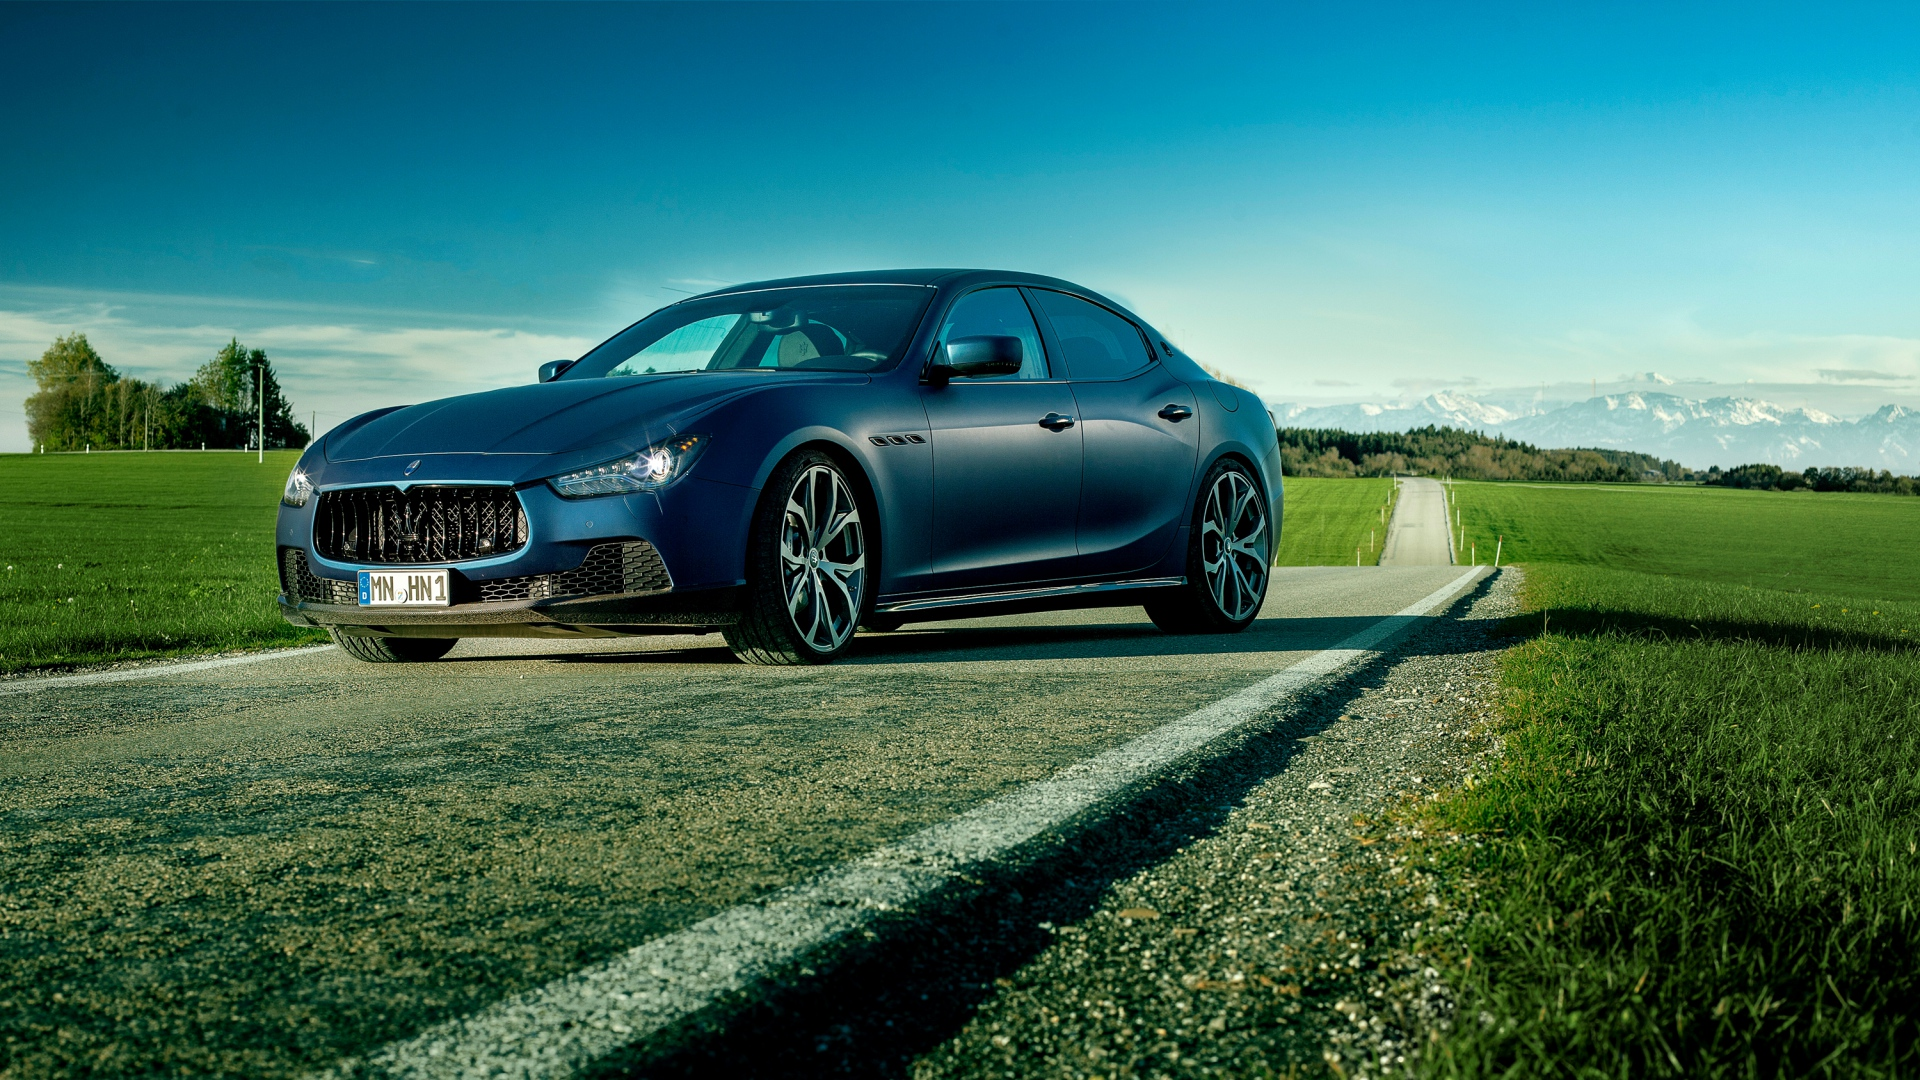 Hd Ghibli Wallpaper 1080: Maserati Ghibli, HD Cars, 4k Wallpapers, Images